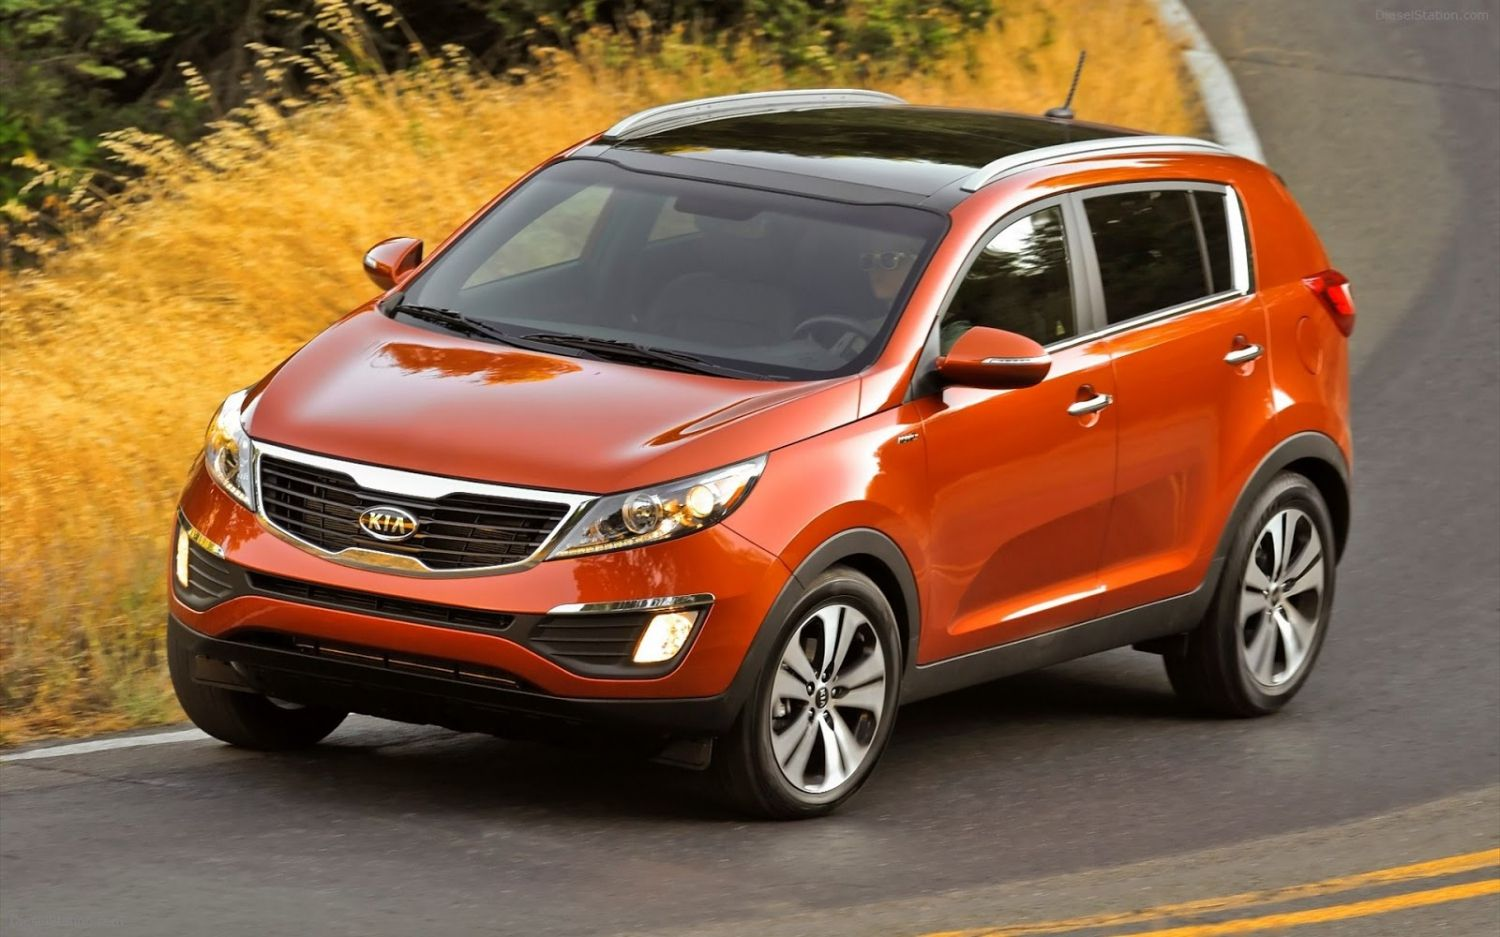 Kia Sportage 2017 Not Sure What Color I Want But This Is Nice Small Suv